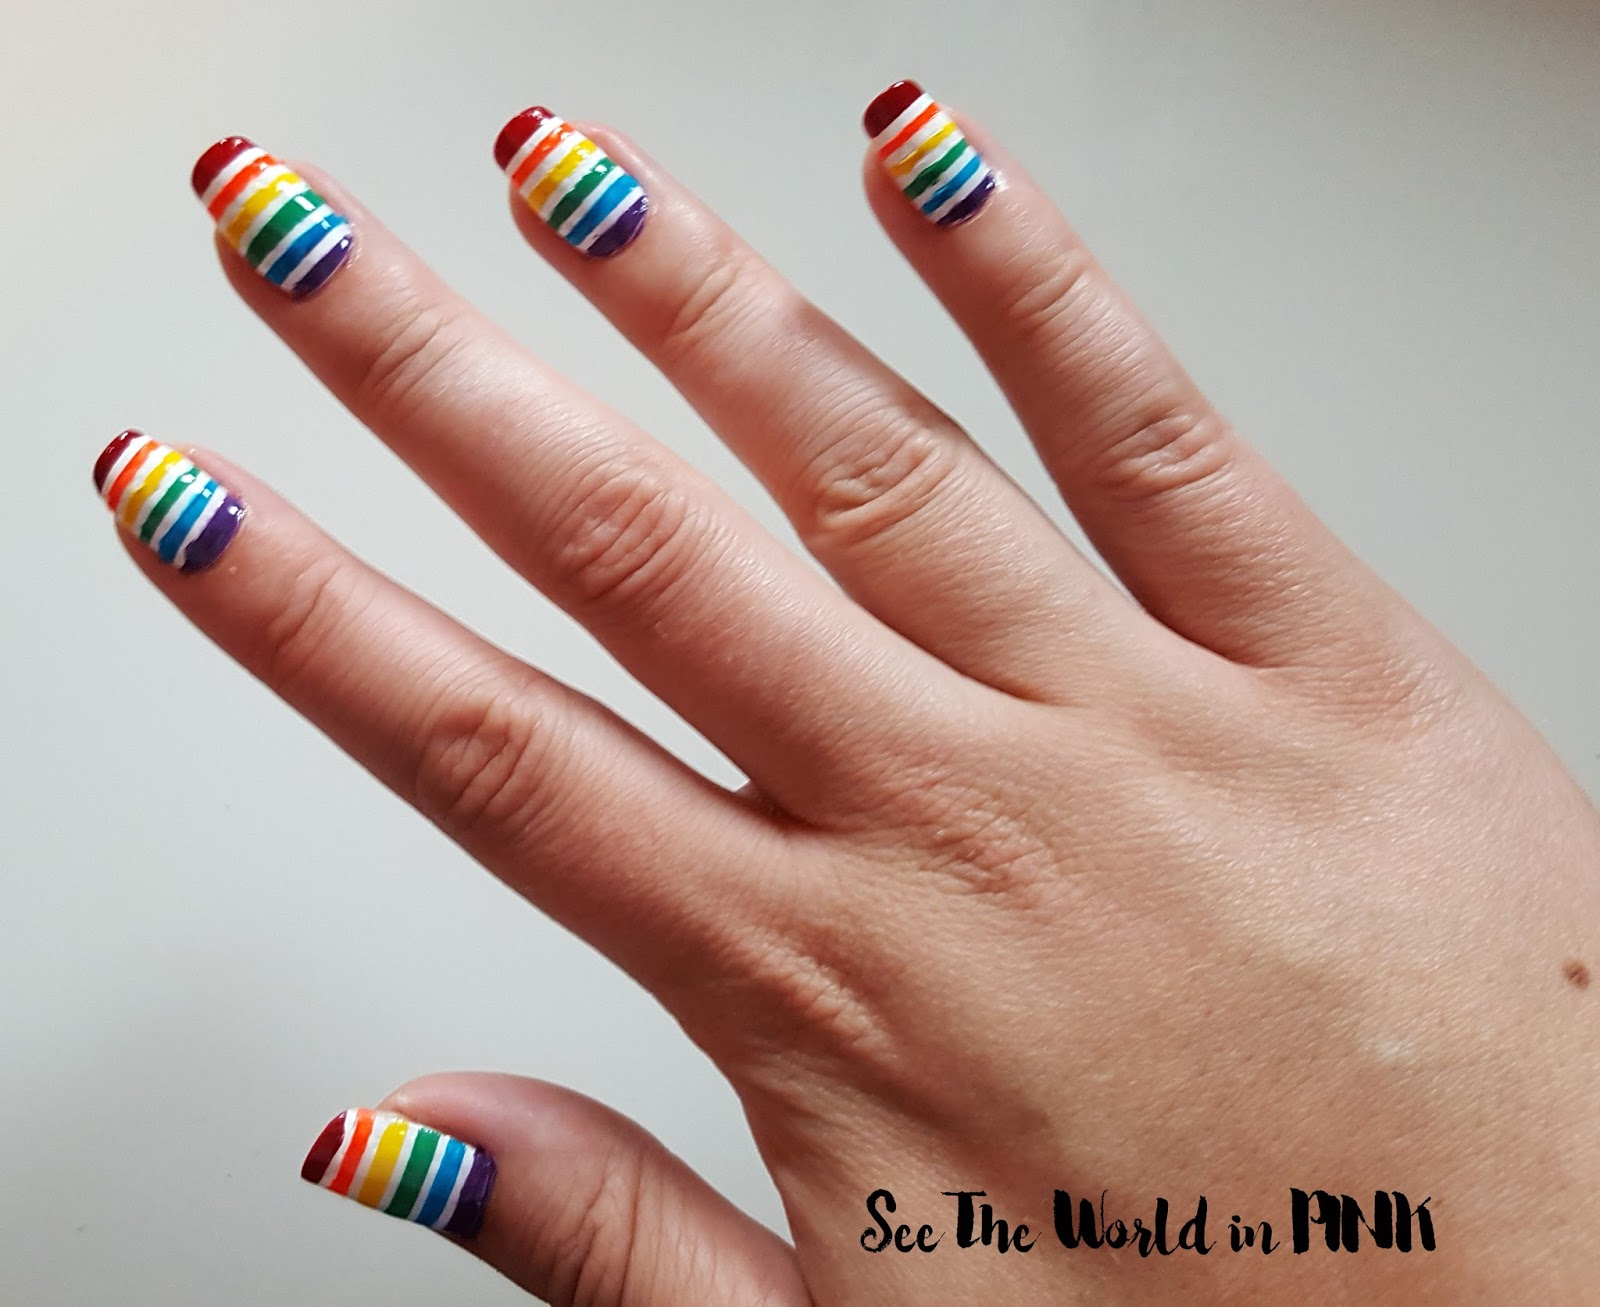 Manicure Monday - YYC Pride Week Rainbow Nails!